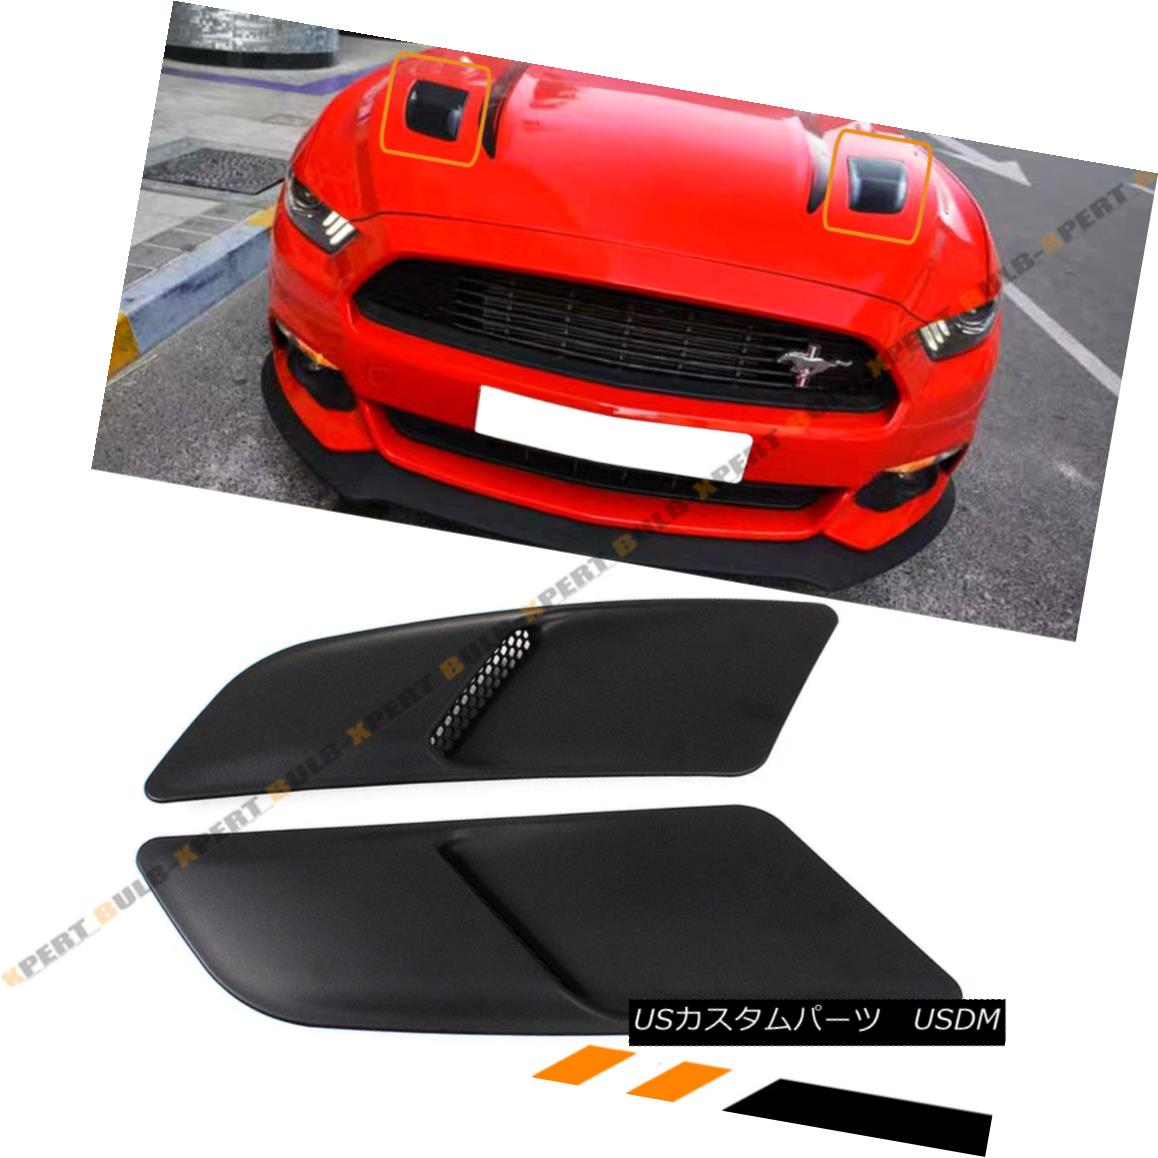 Cuztom Tuning Fits for 2015-2018 Ford Mustang S550 GT V6 Real Carbon Fiber Change Coin Tray Box